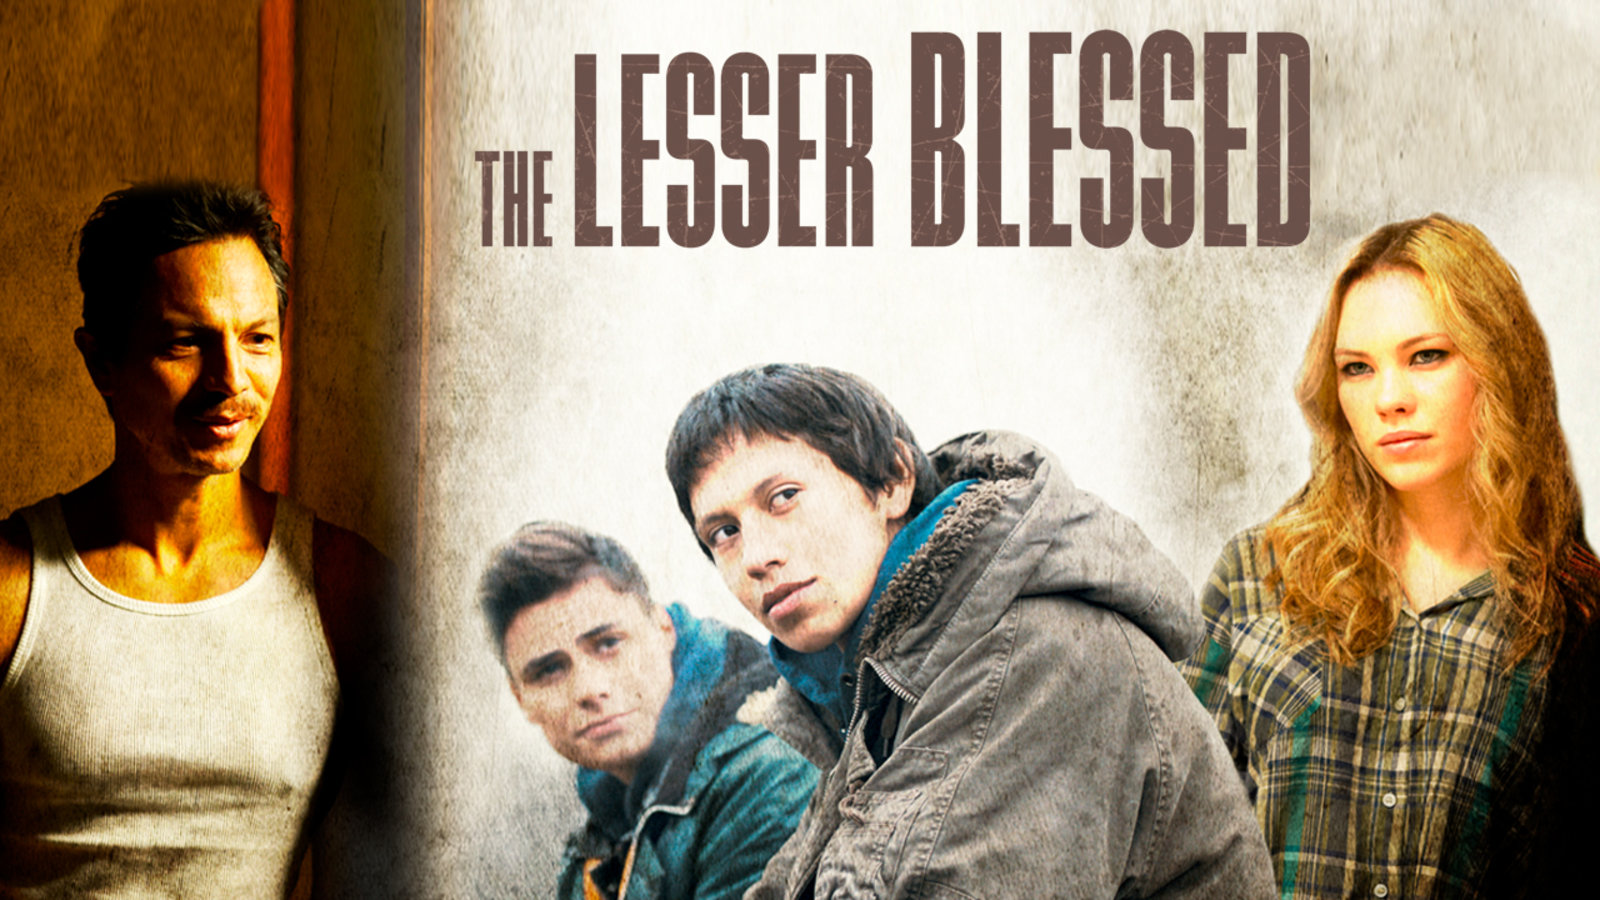 the lesser blessed full movie online free